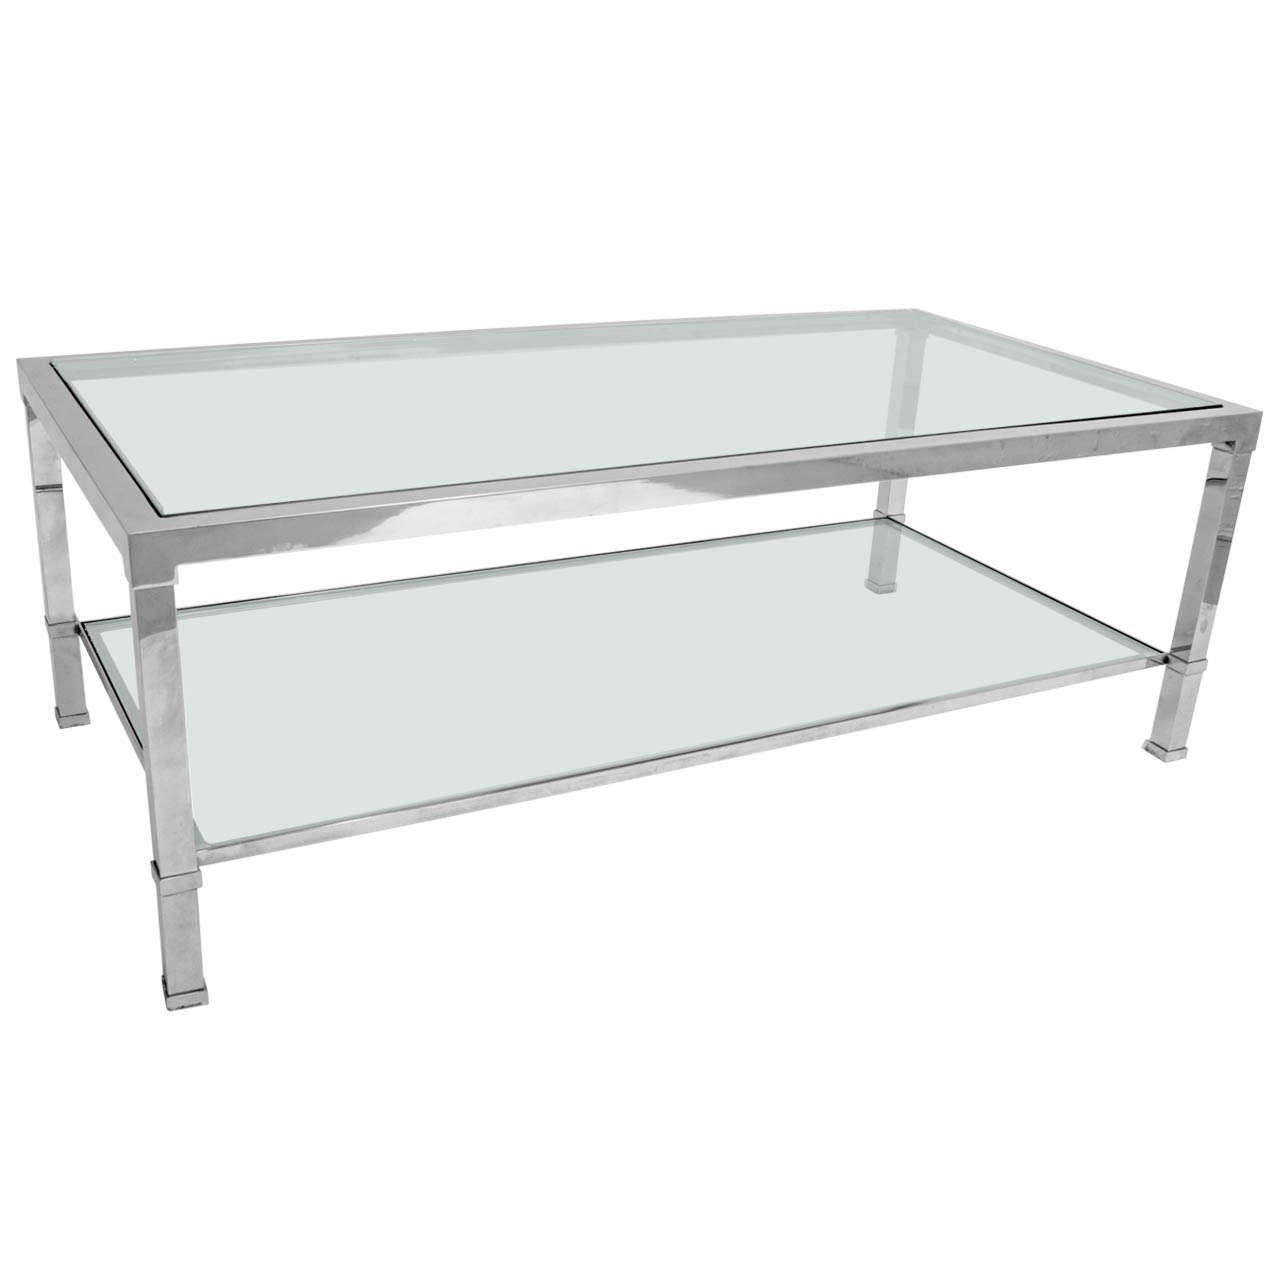 1960 39 S 39 Chrome And Glass Two Tier Coffee Table At 1stdibs